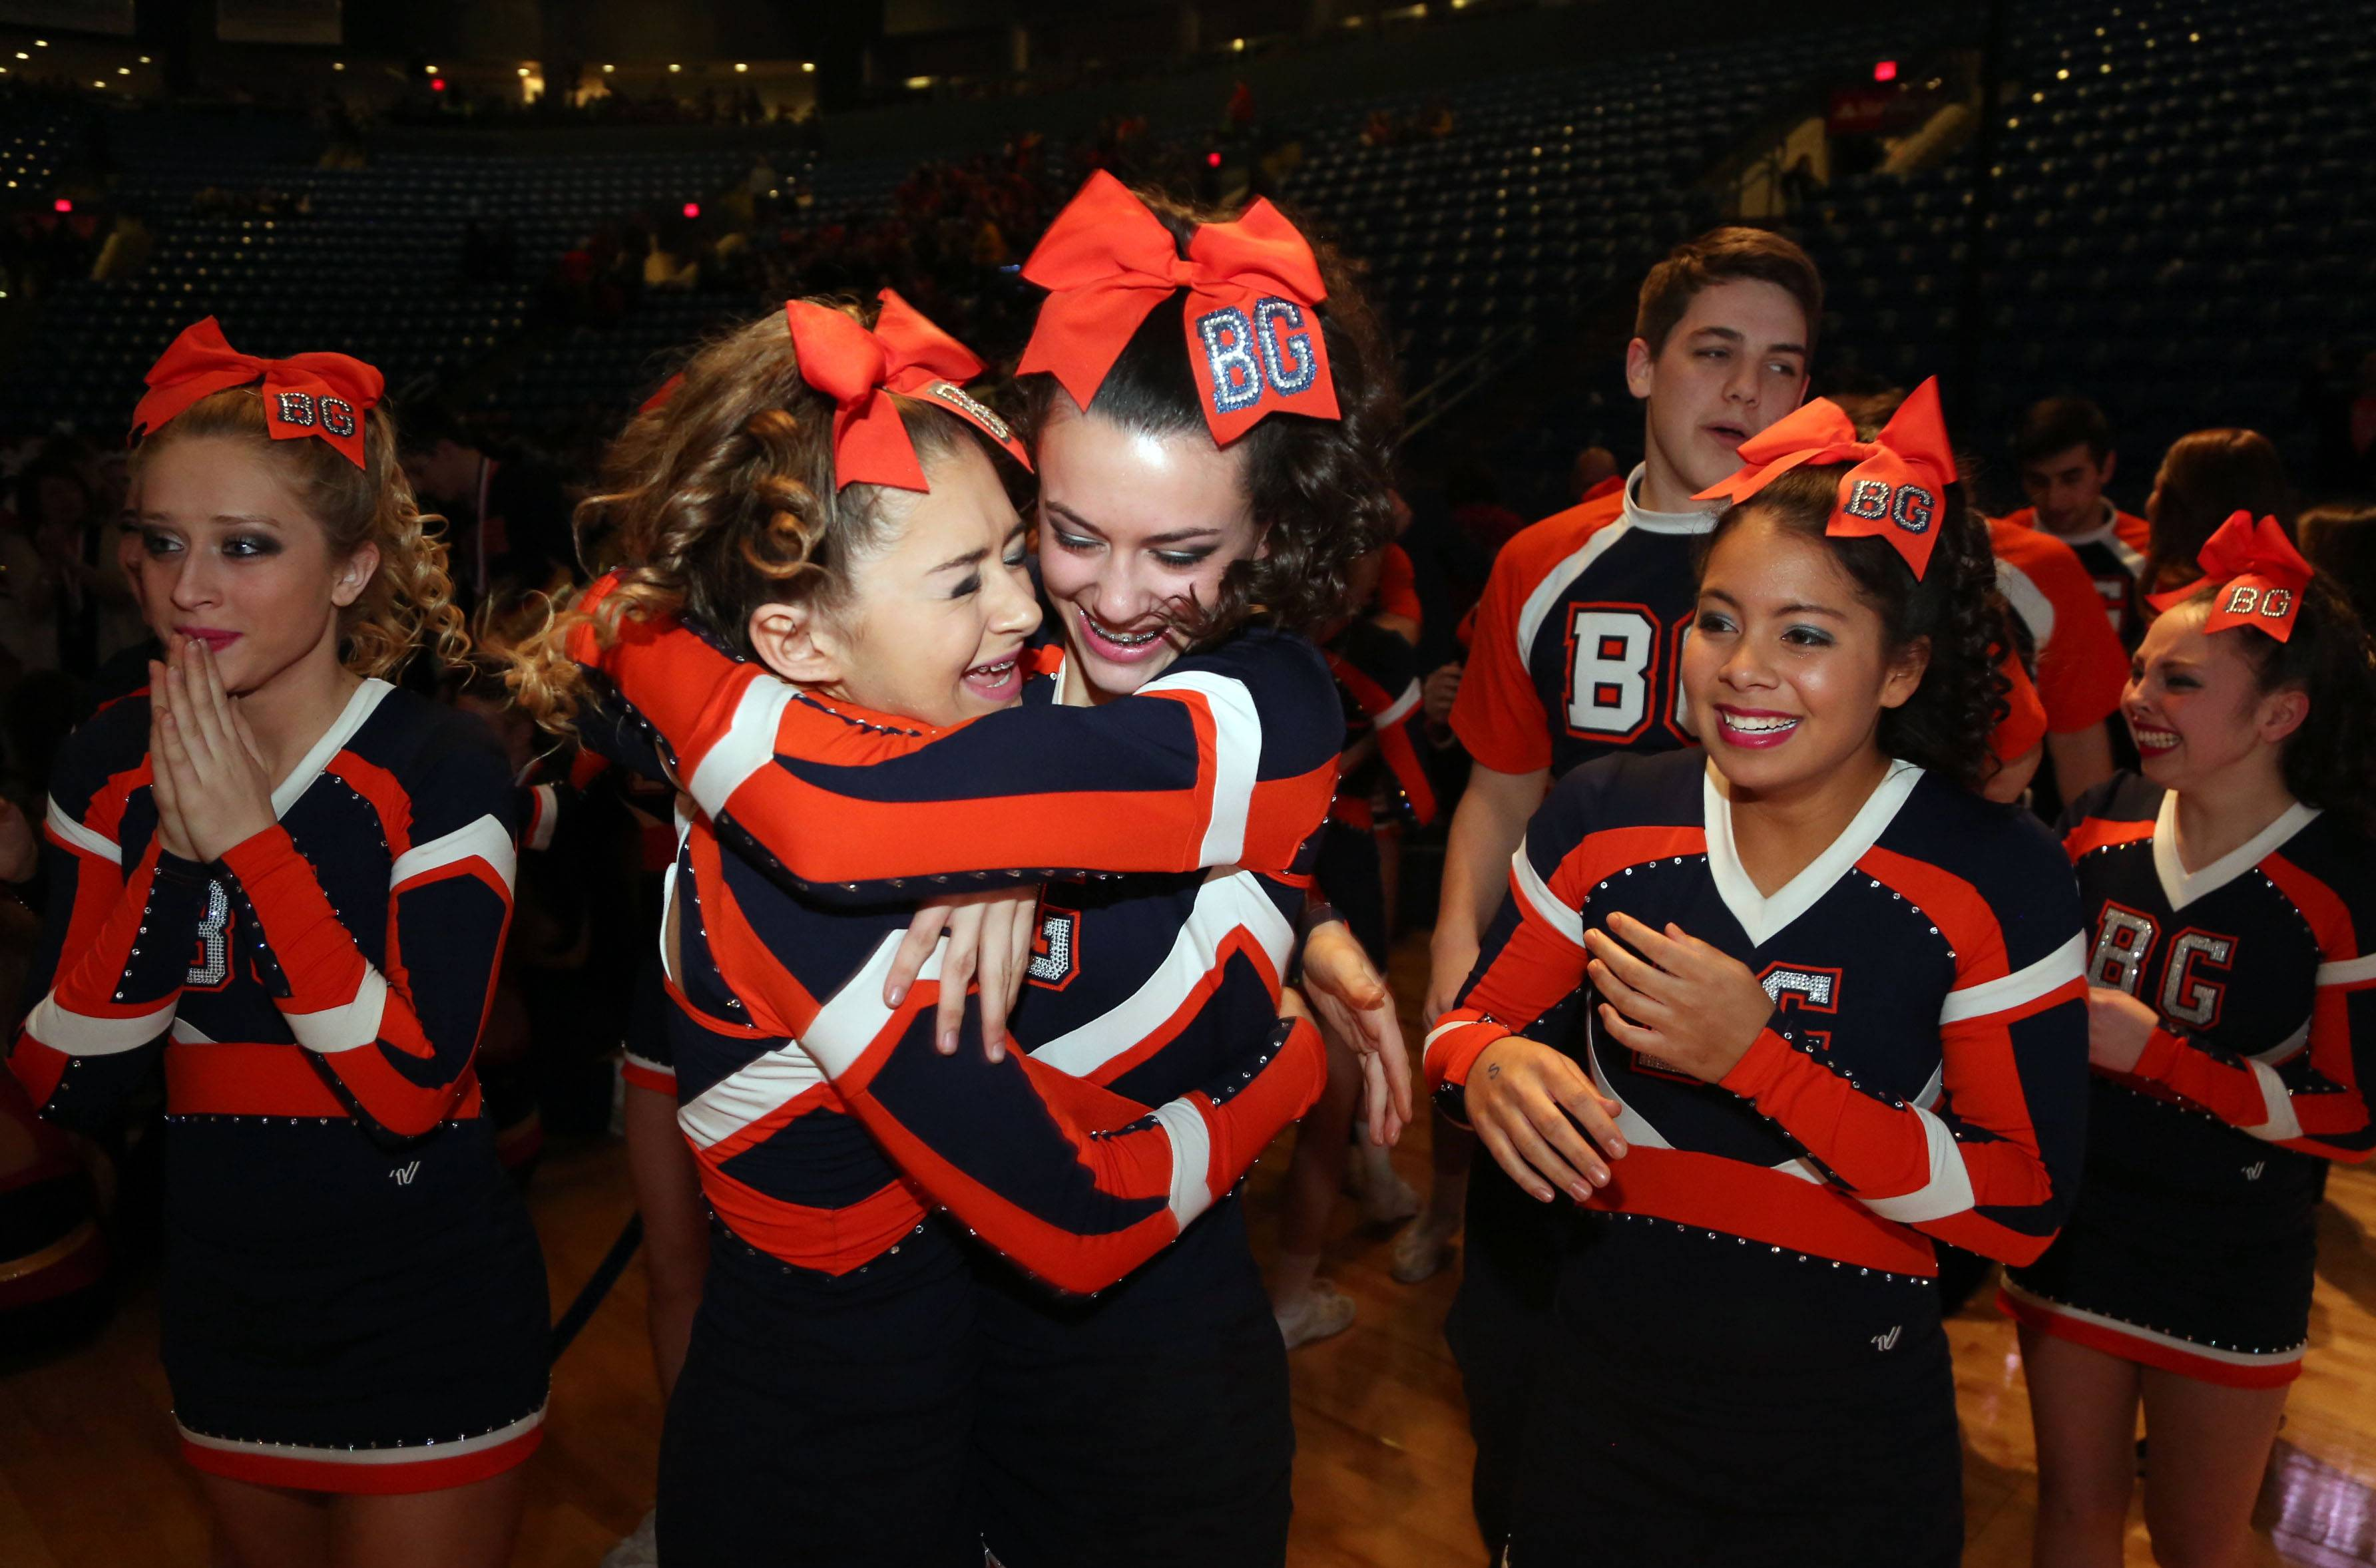 Buffalo Grove High team wins third state cheer title in 4 years